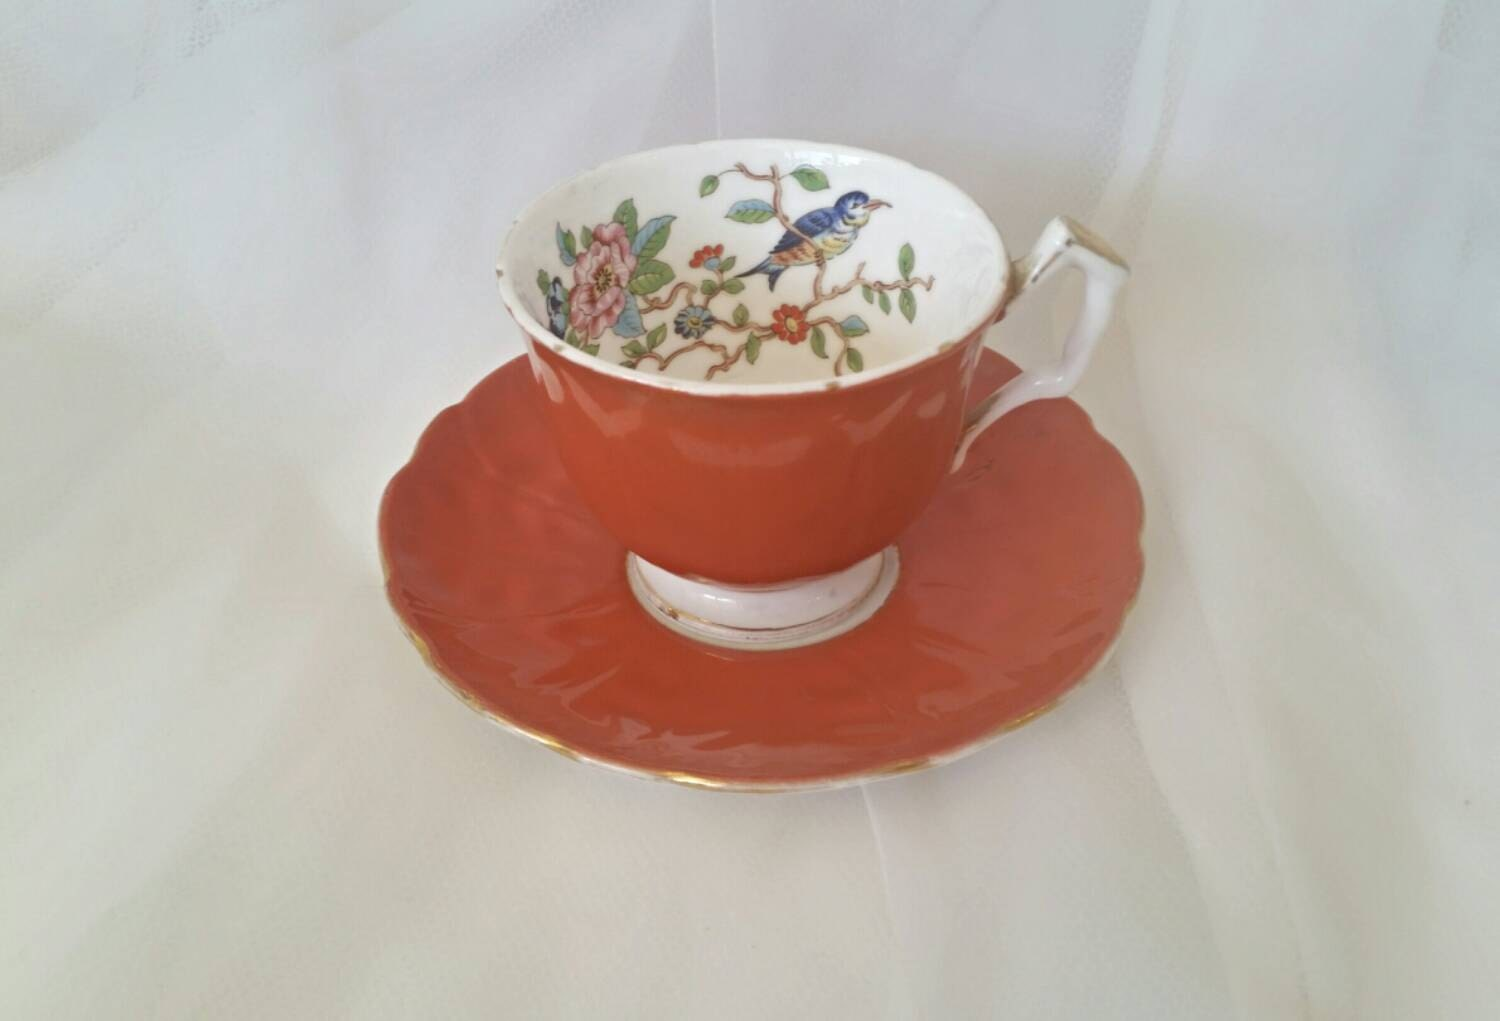 Aynsley English Teacup Saucer England Bone China Bird Branch Gold Red Orange 2902 Vintage Teaparty Haute Juice